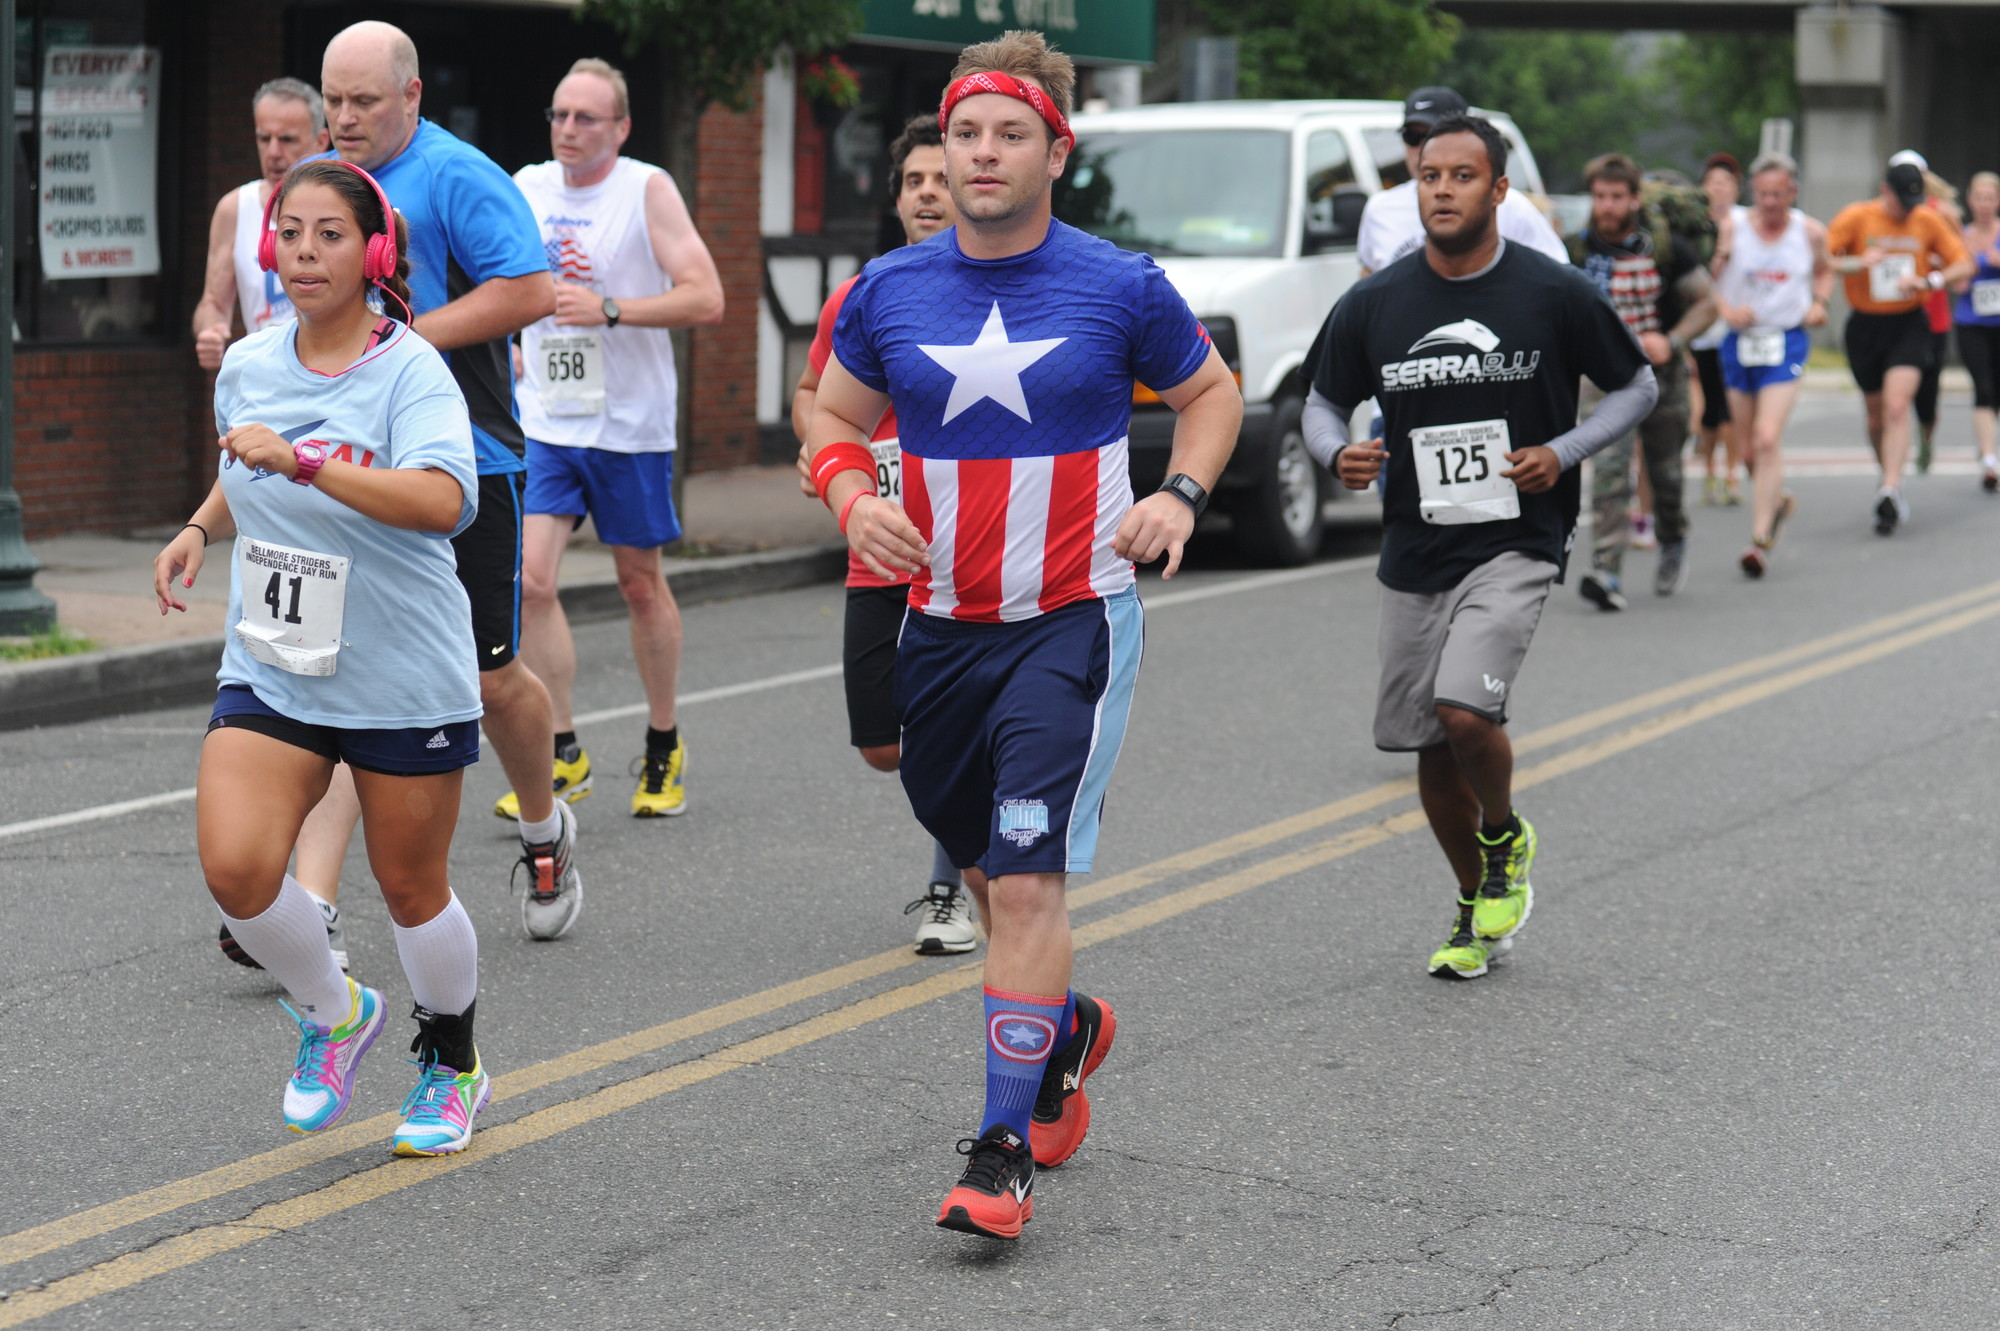 Thomas McGuire dressed as Captain America in honor of Independence Day.